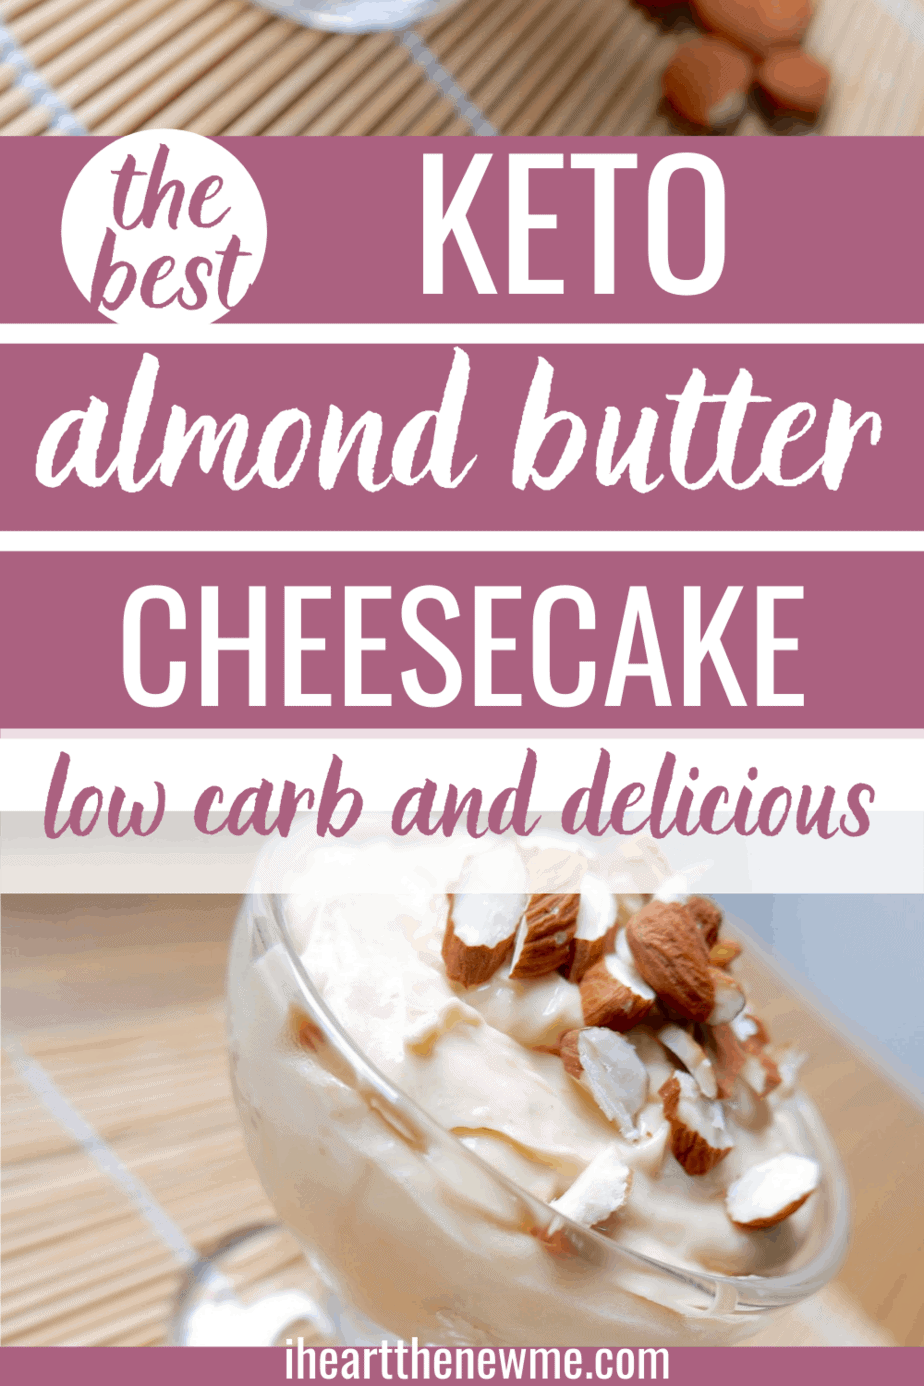 Keto Almond Butter Cheesecake